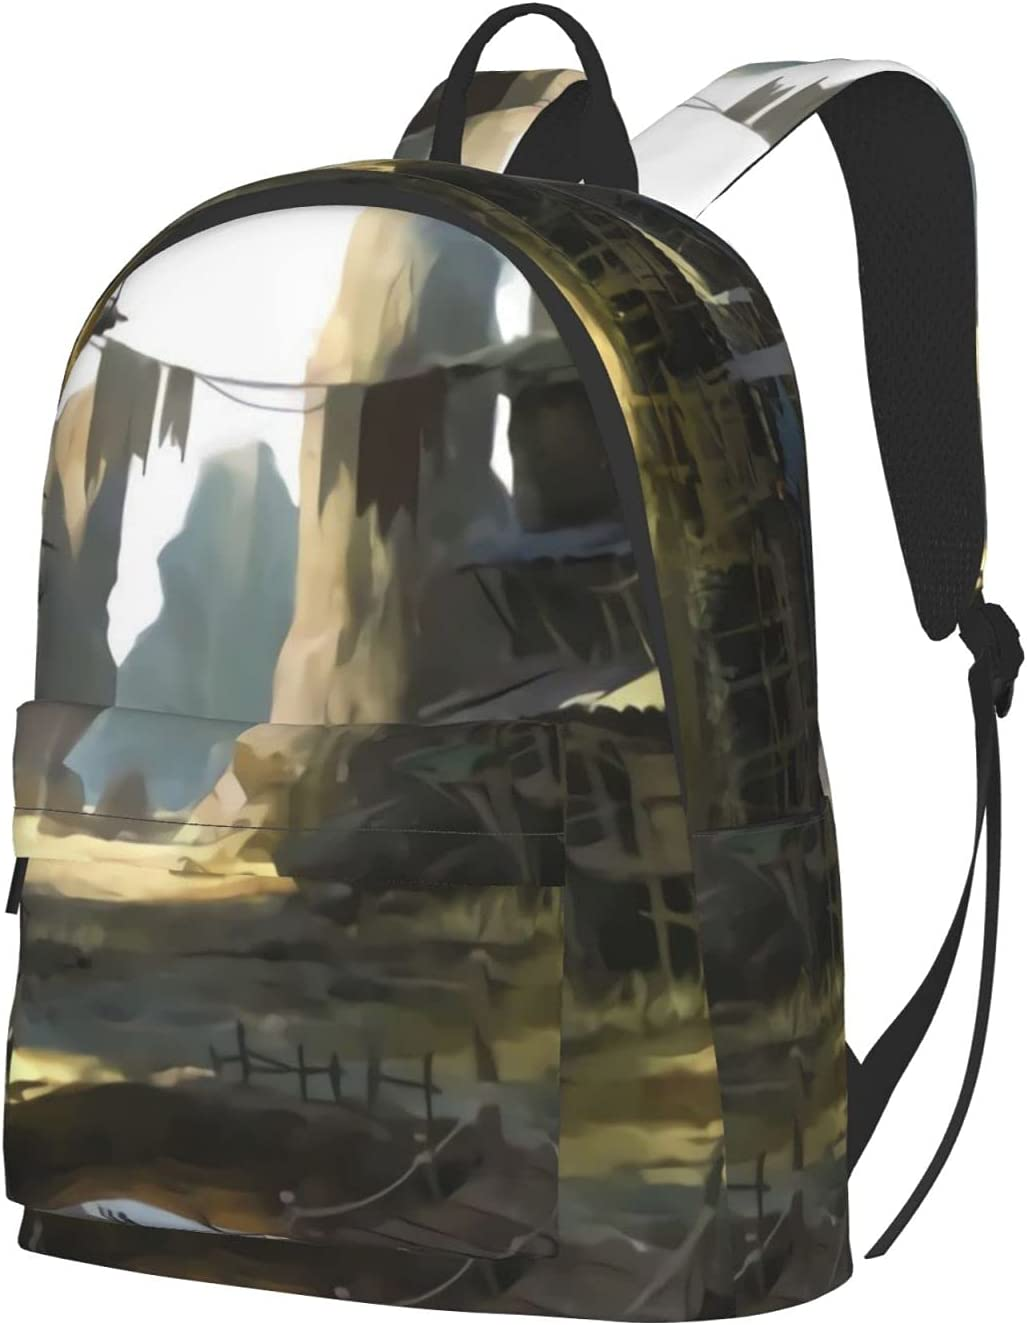 Large 2021 new Mesa Mall Capacity Backpack Water-Resistant Purse Sho Small